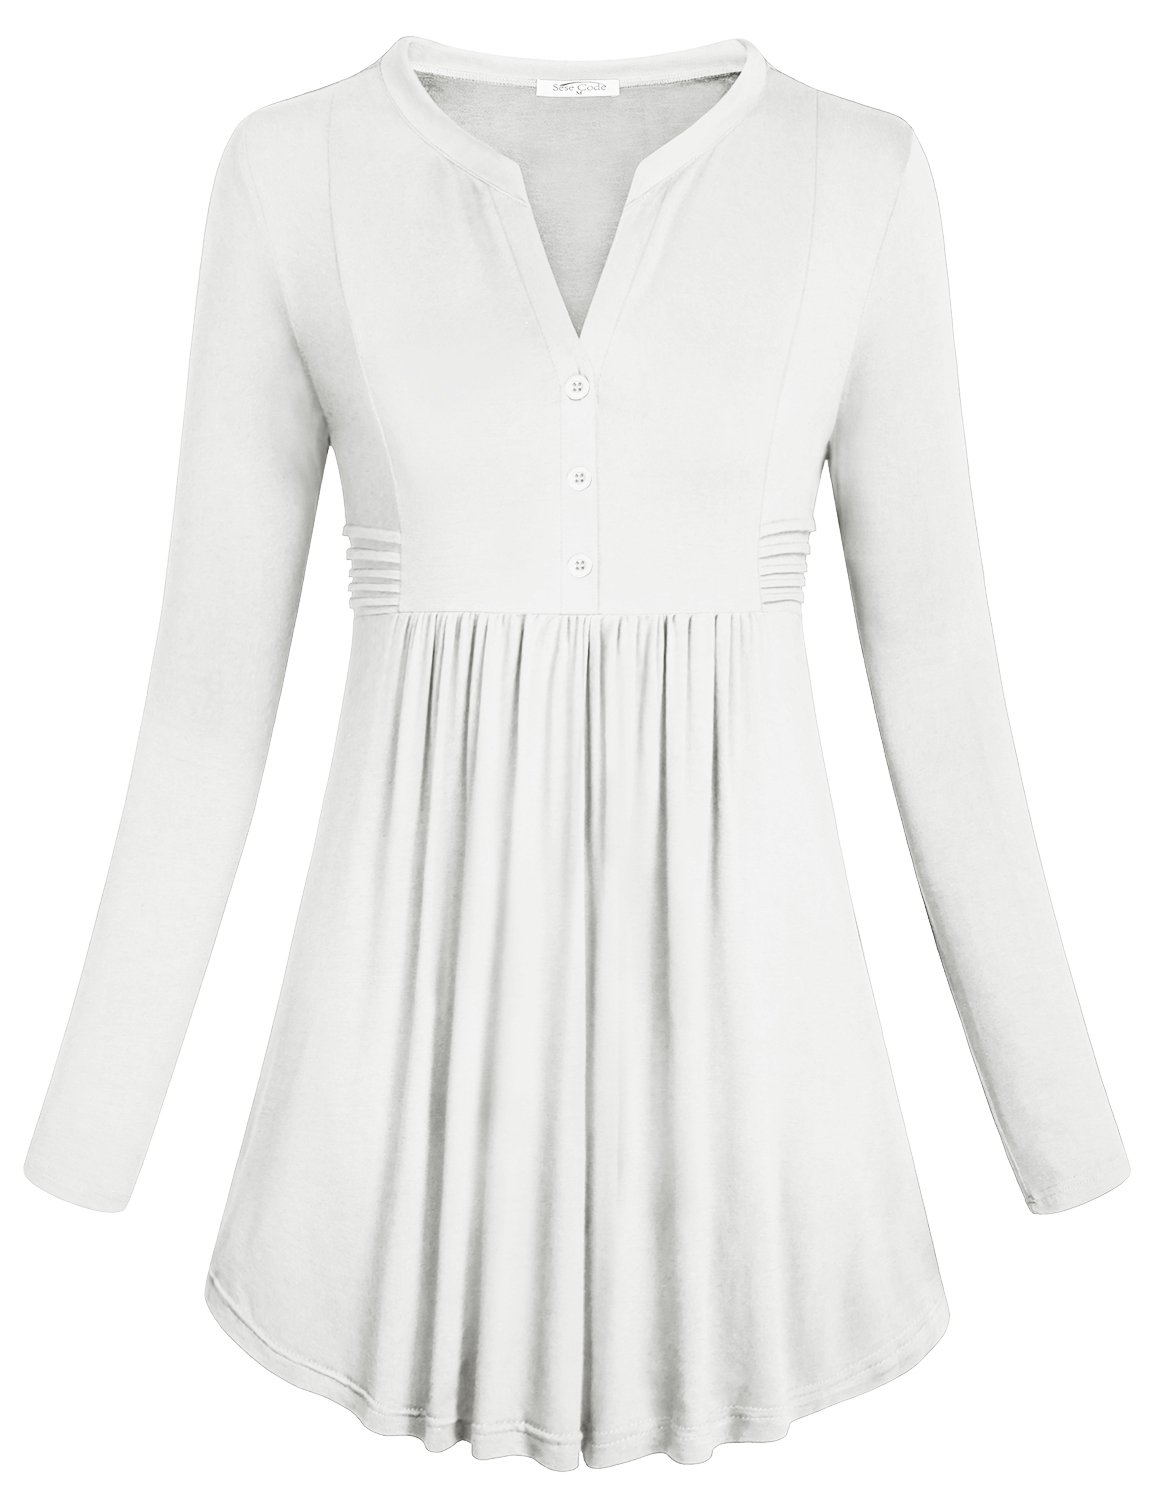 SeSe Code Loose Tunic Tops for Women with Sleeves, Ladies Long Sleeve Henley V Neck Career Shirts for Leggings Button-up Trim Pleats Flared Hemline High Waist Blouse Tunic White Large